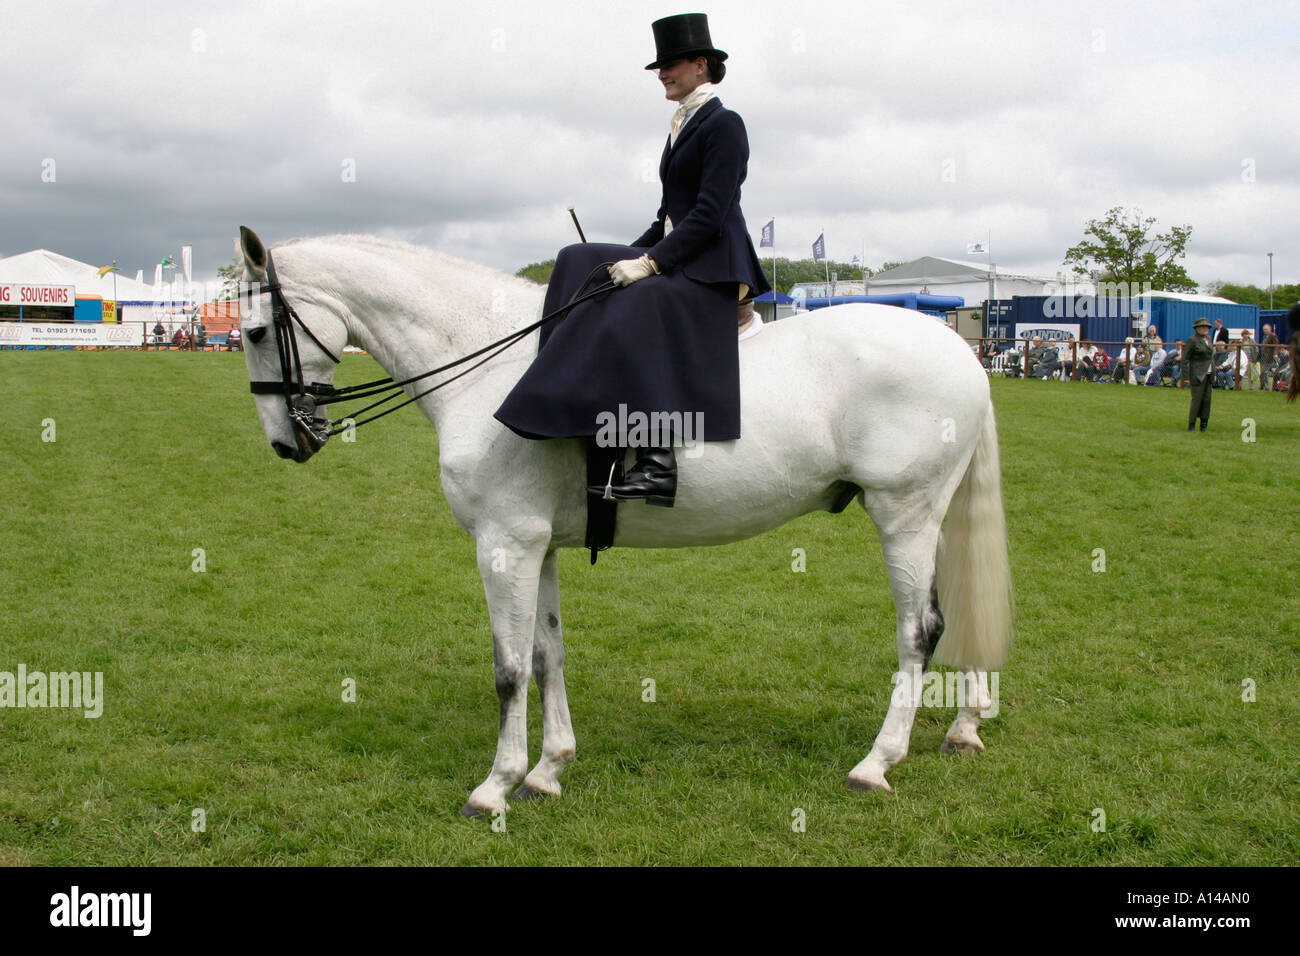 woman riding sidesaddle at Devon County Agricultural show UK - Stock Image